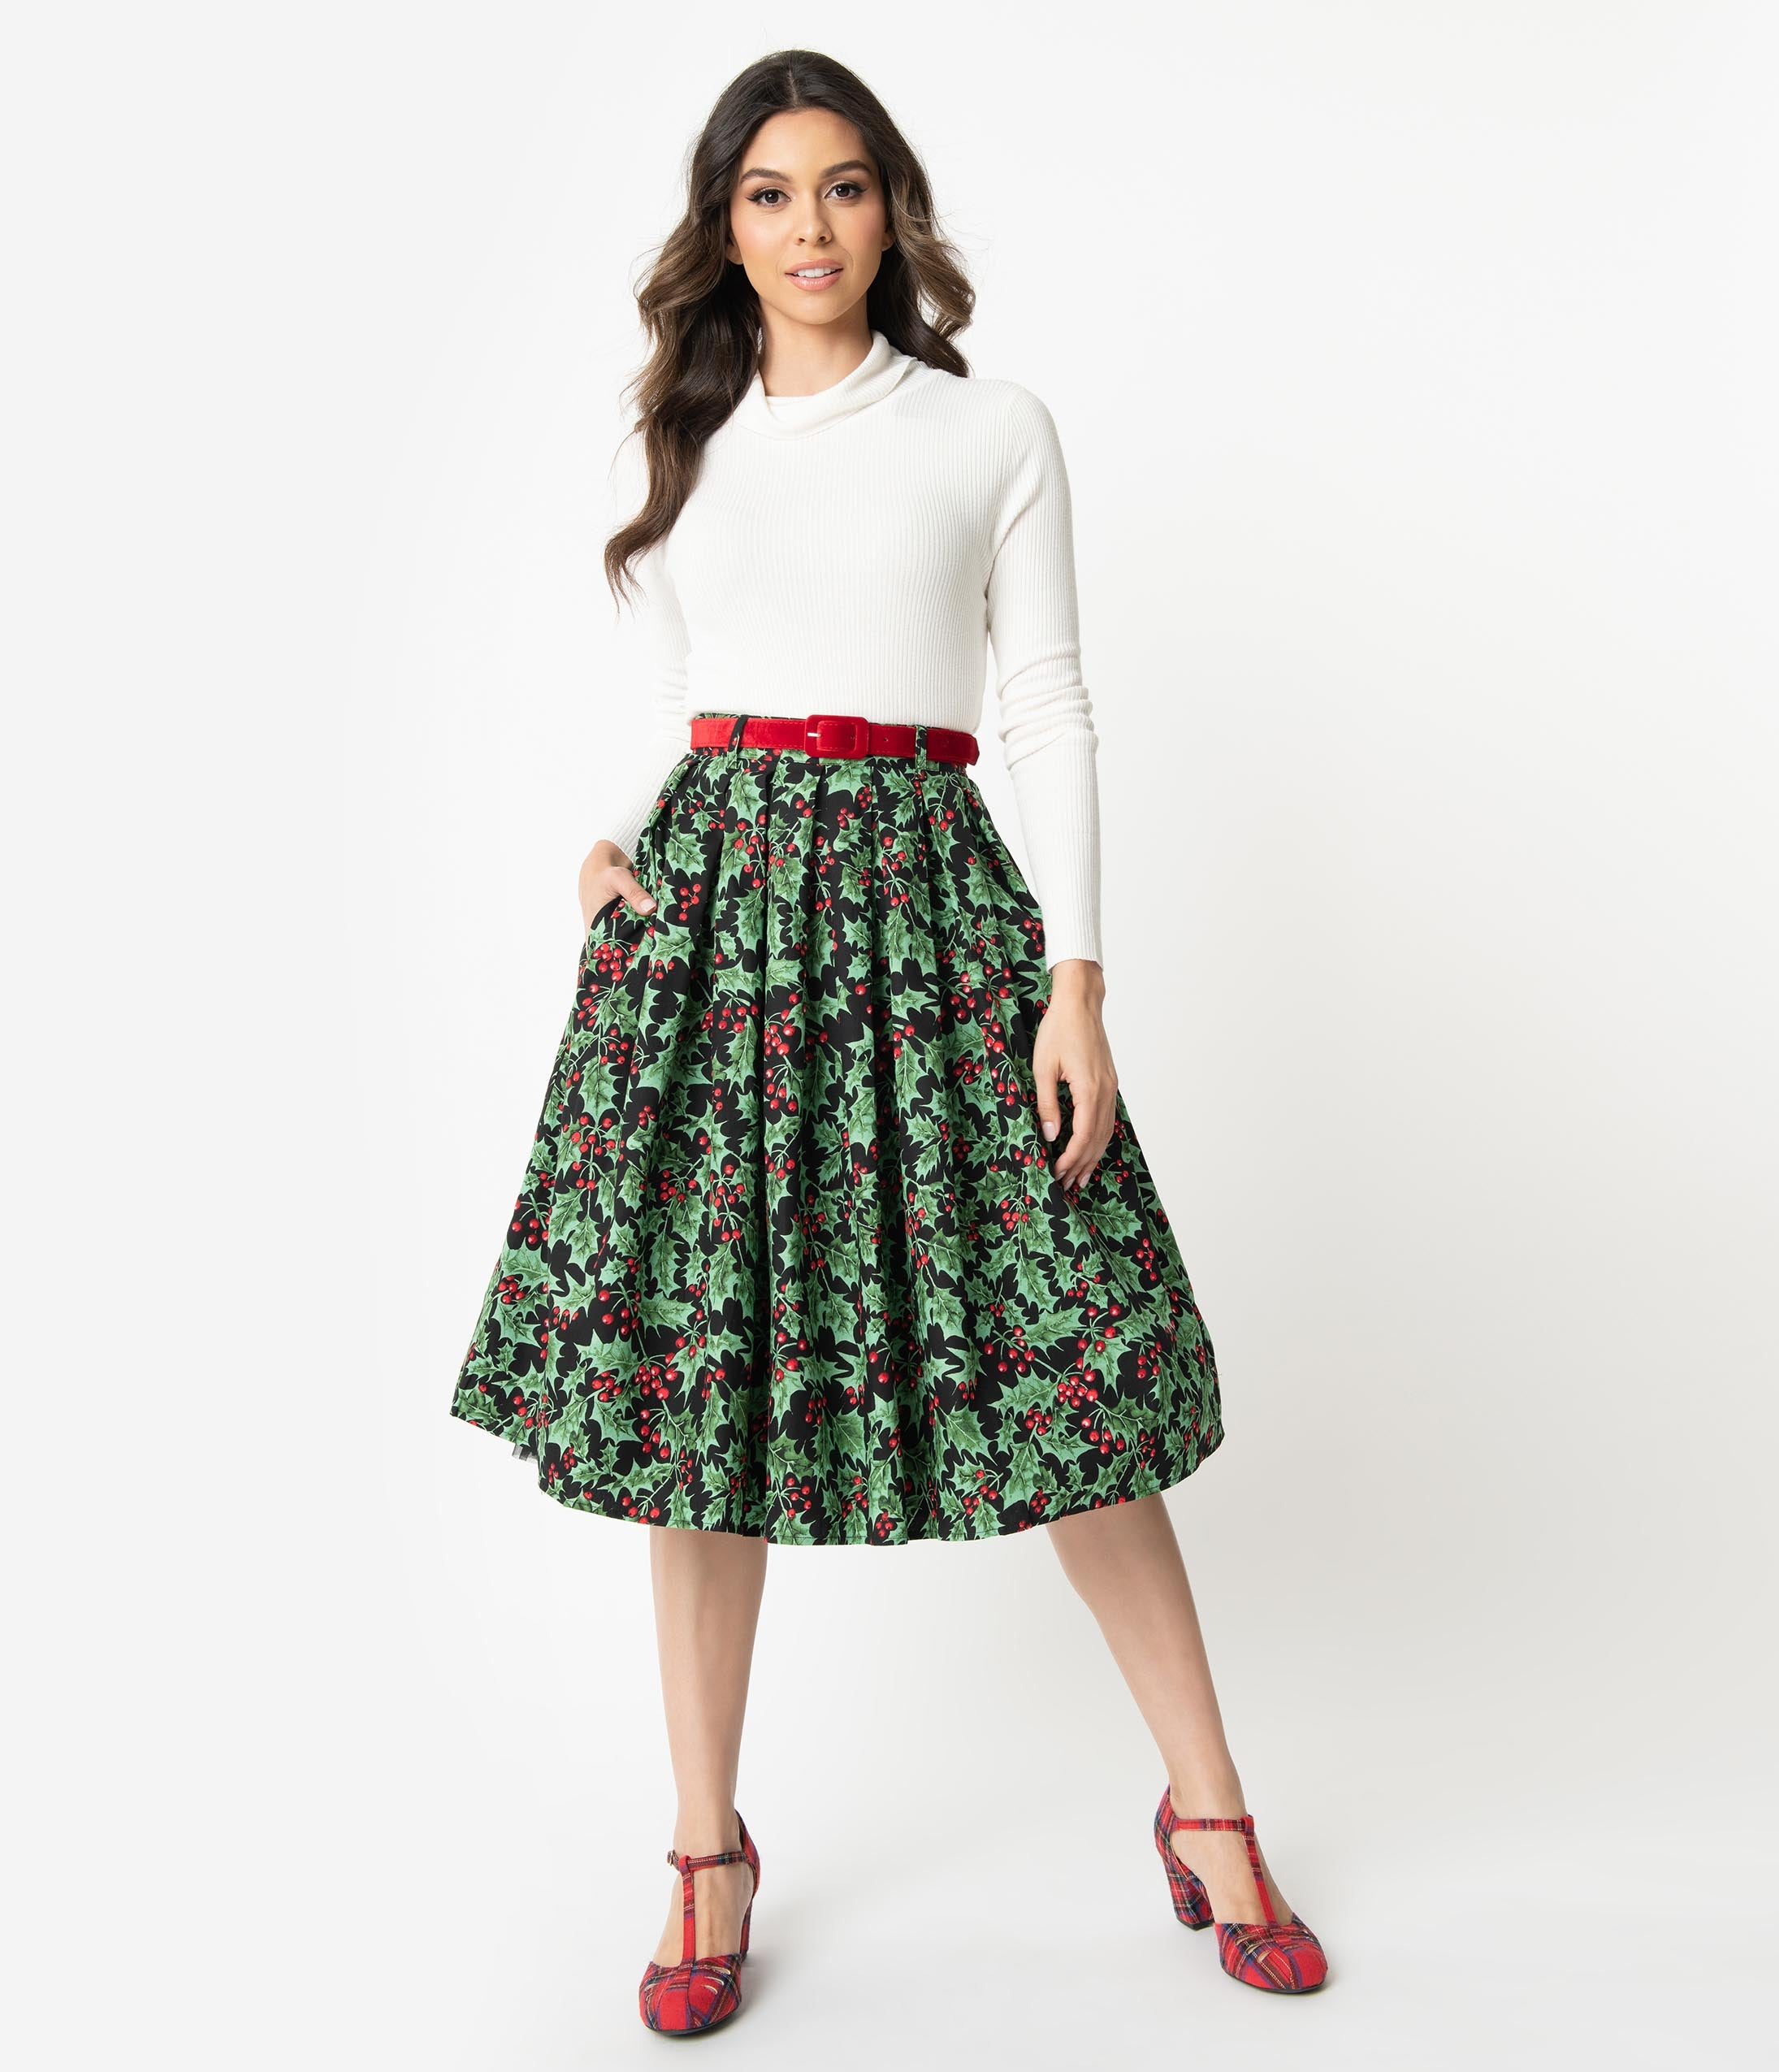 Retro Skirts: Vintage, Pencil, Circle, & Plus Sizes Holly Berry Print Pleated Cotton Swing Skirt $62.00 AT vintagedancer.com